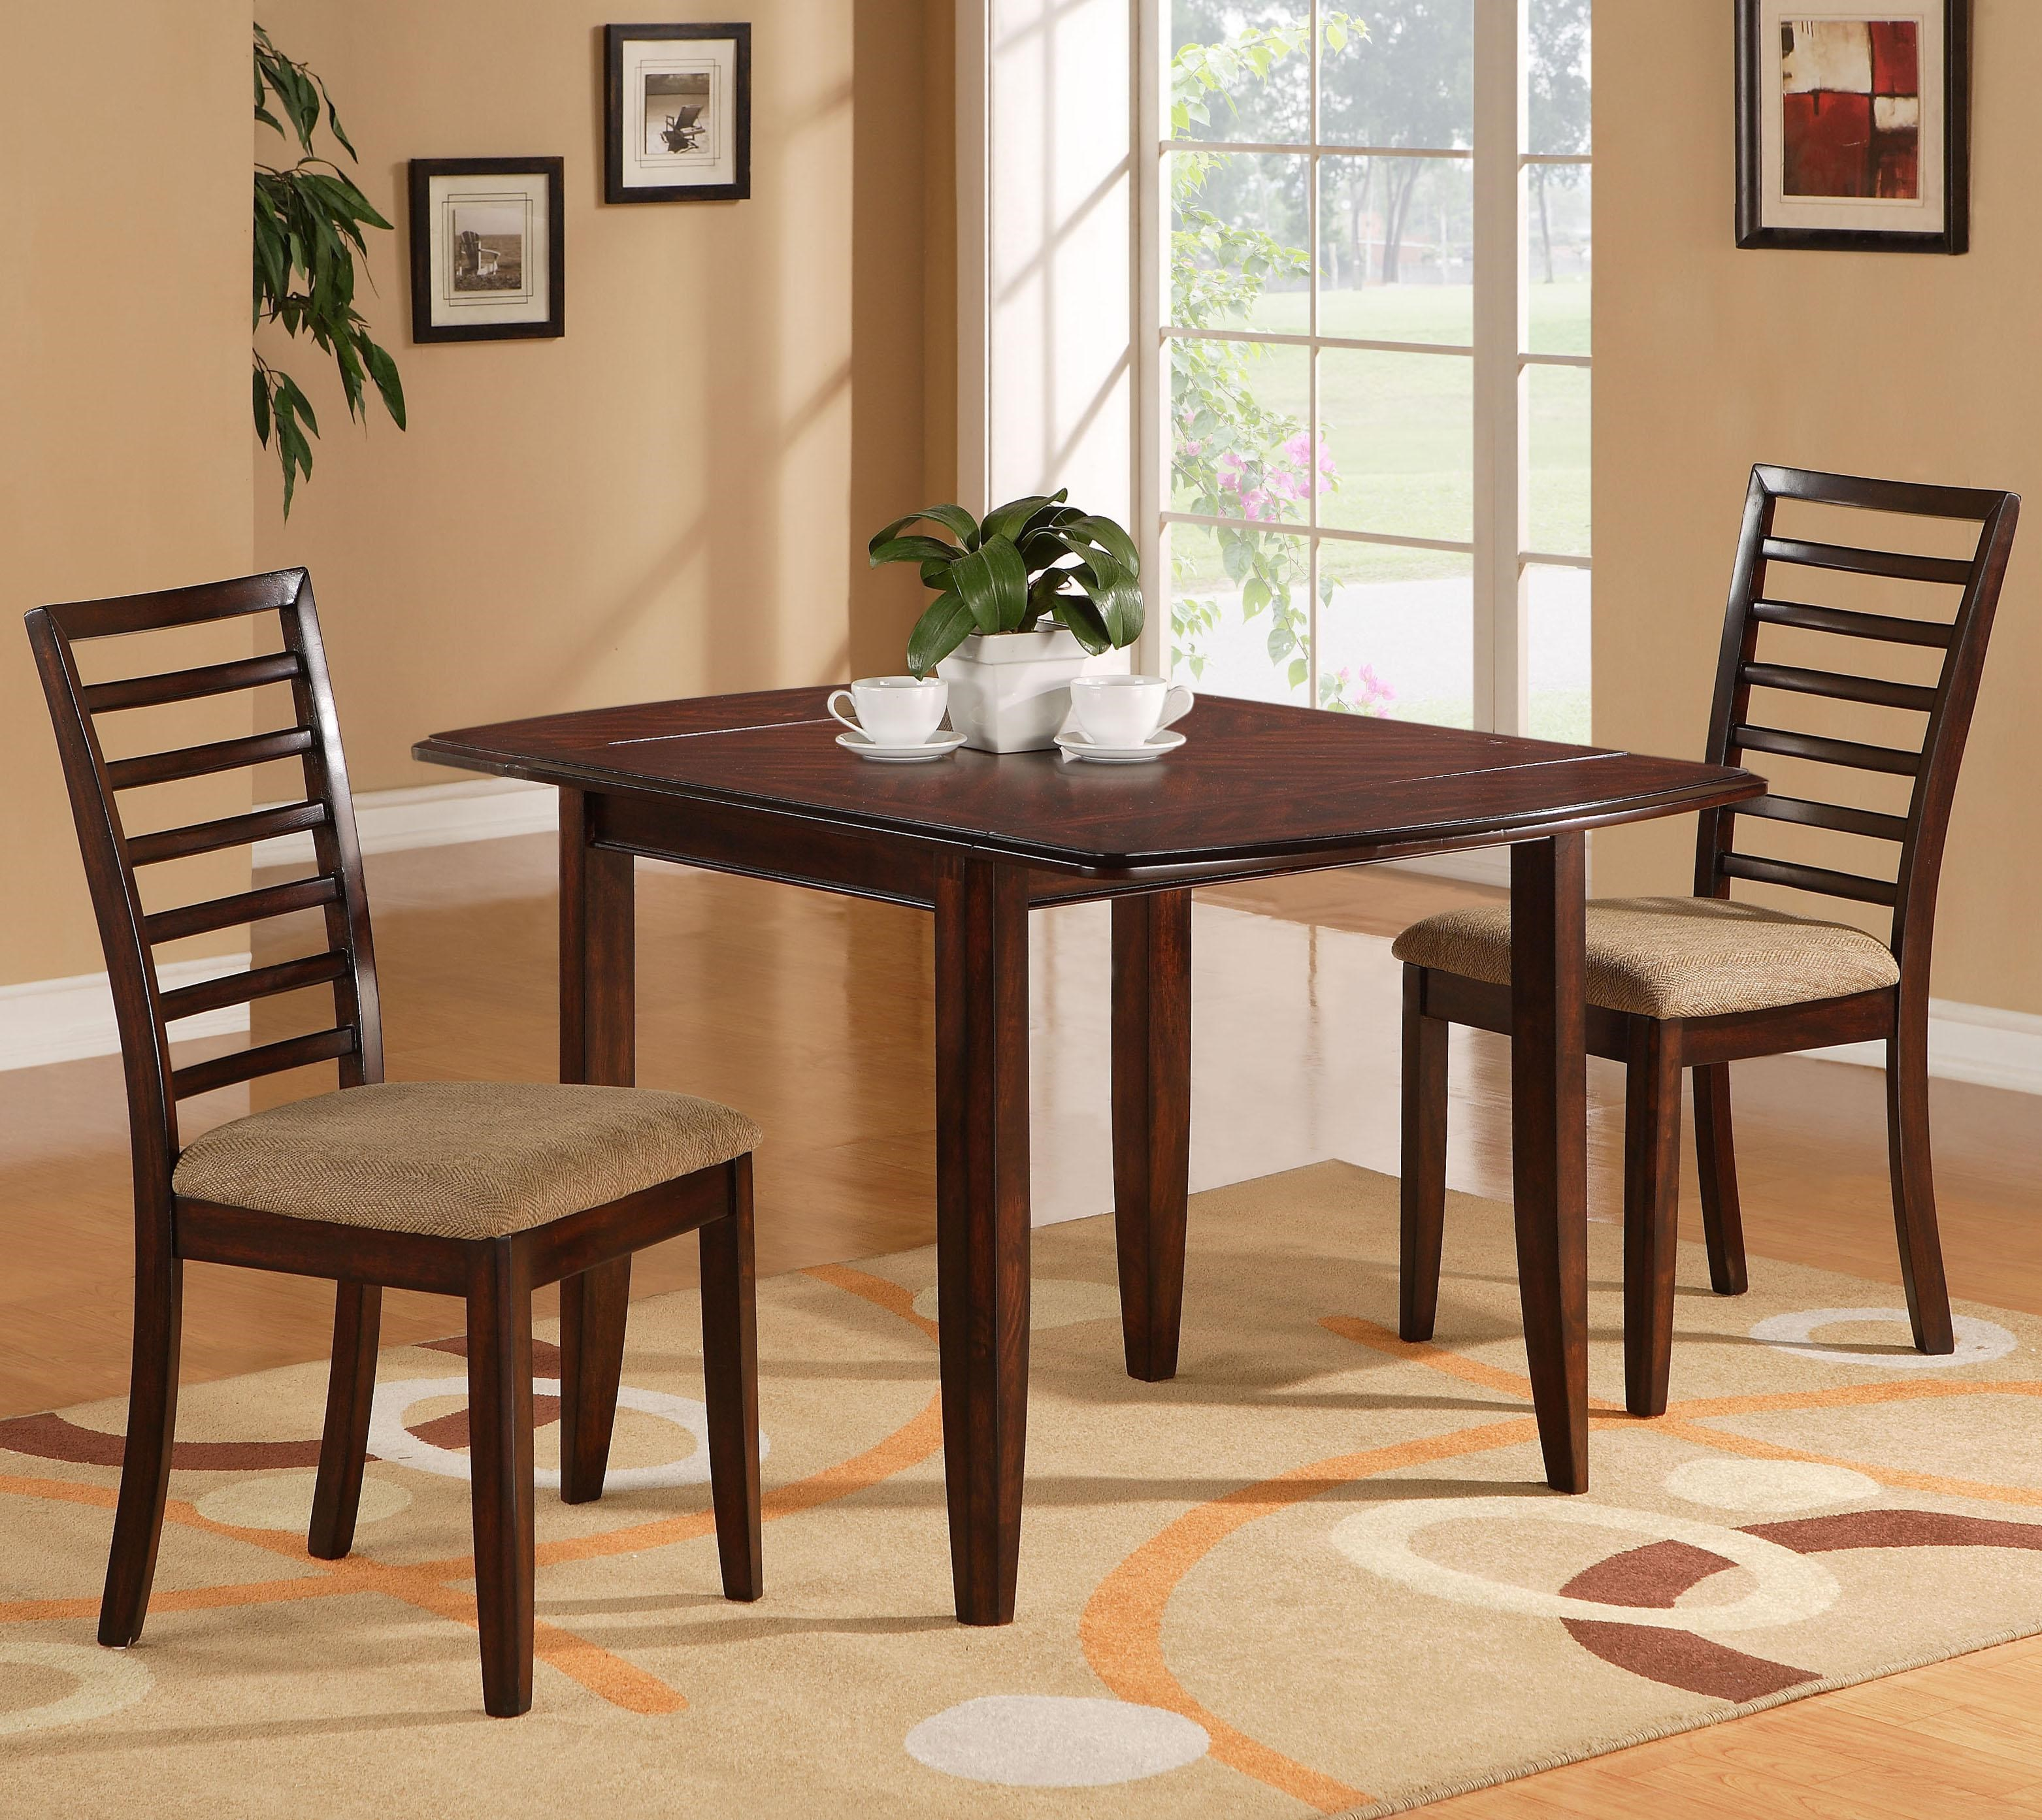 Table With 2 Chairs Ivan Table 2 Chairs By Holland House At Walker S Furniture